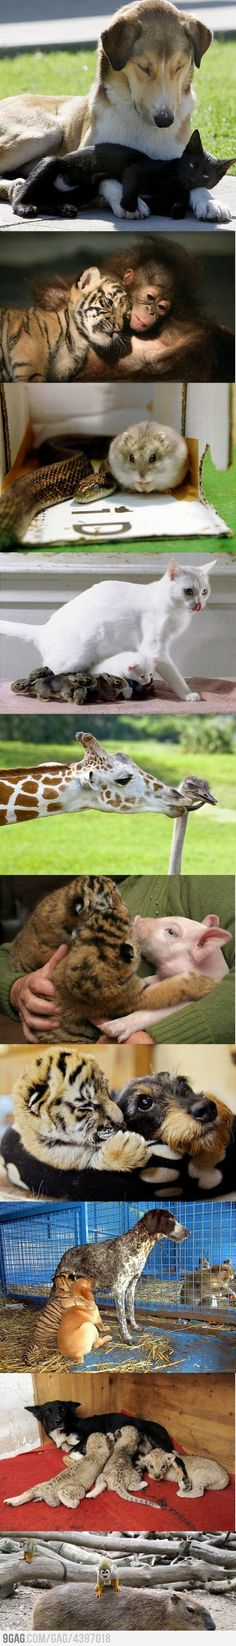 inter species friendships are so beautiful